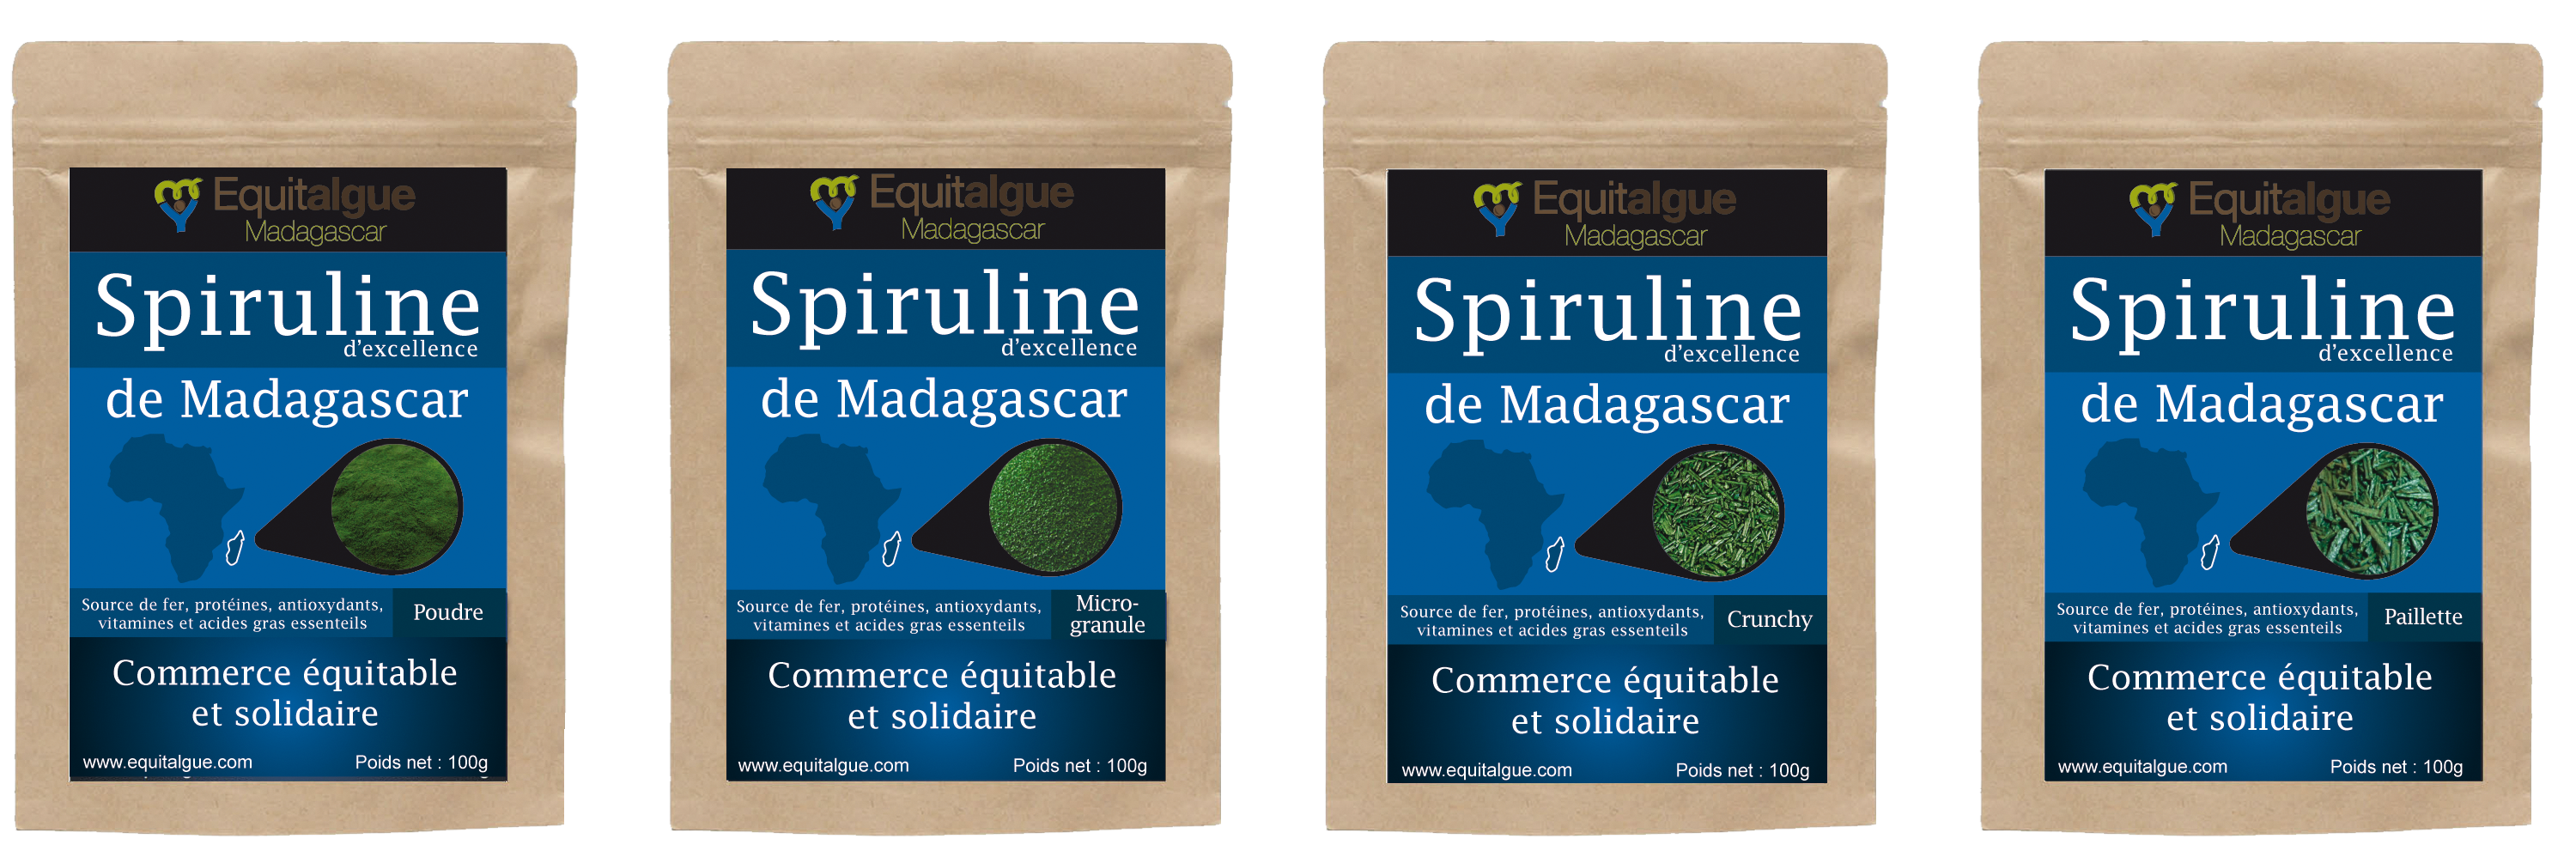 Packaging EQUITALGUE MADAGASCAR by COResponsable Conseil